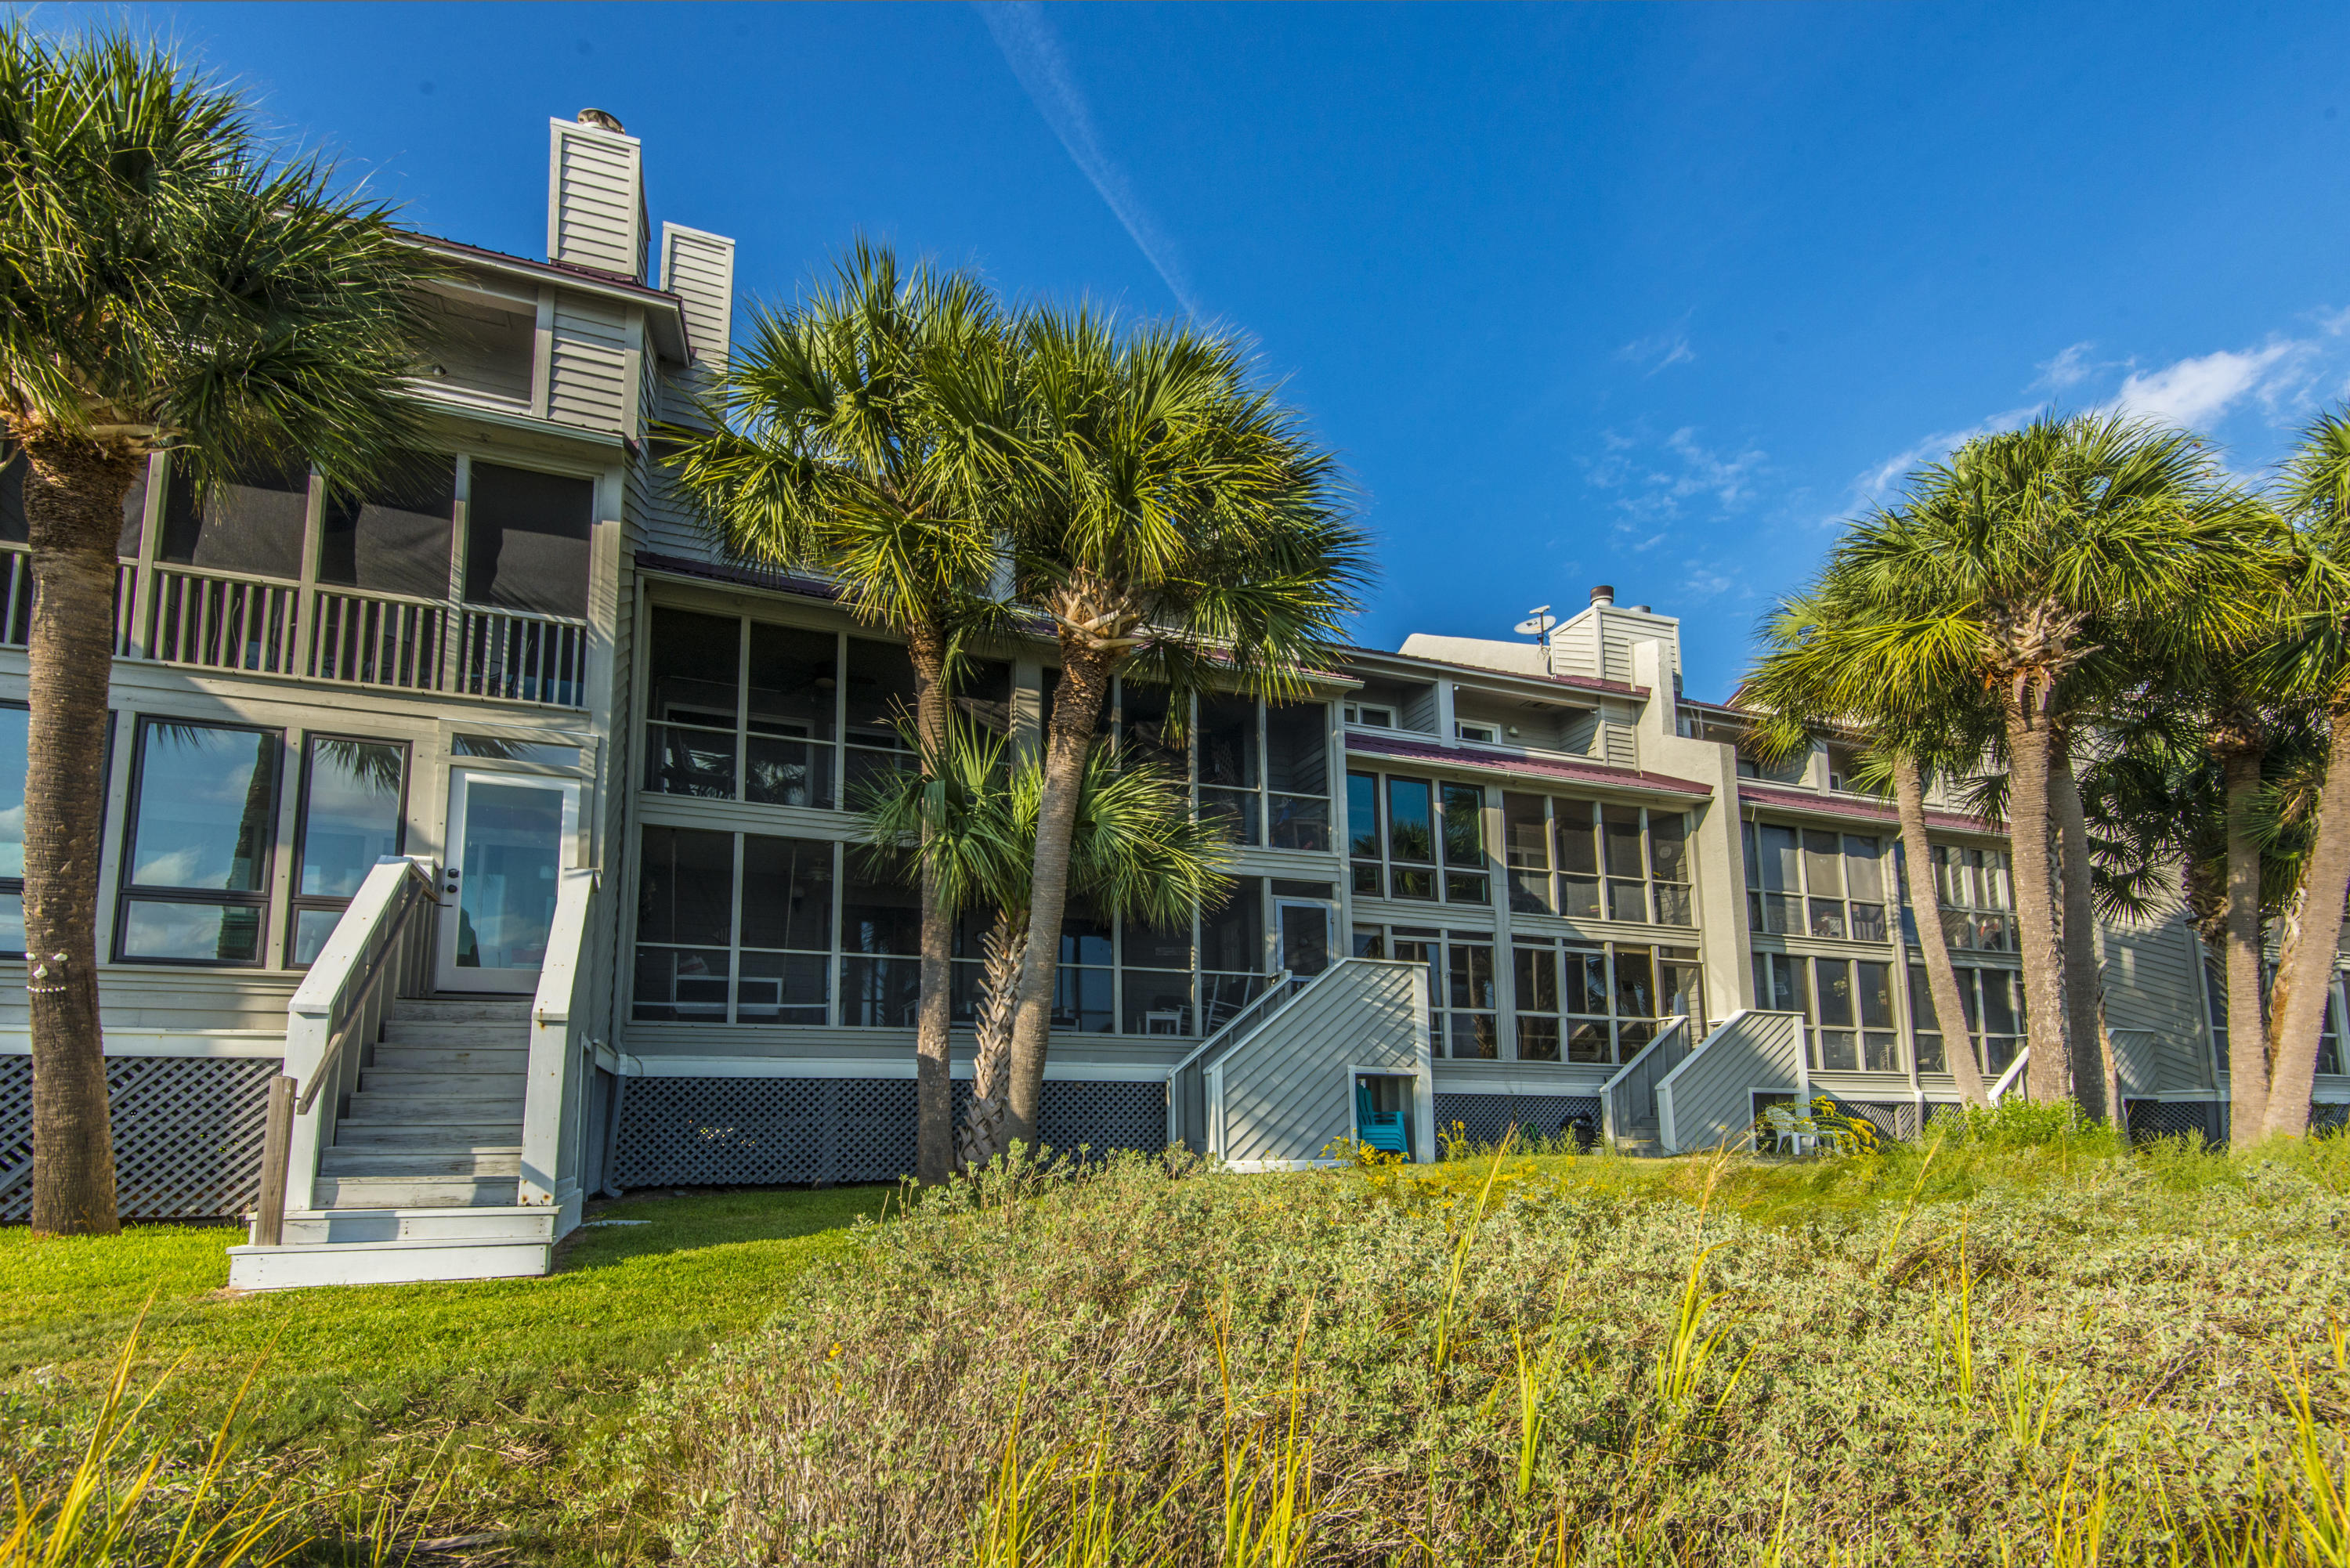 Mariners Cay Homes For Sale - 42 Mariners Cay, Folly Beach, SC - 24